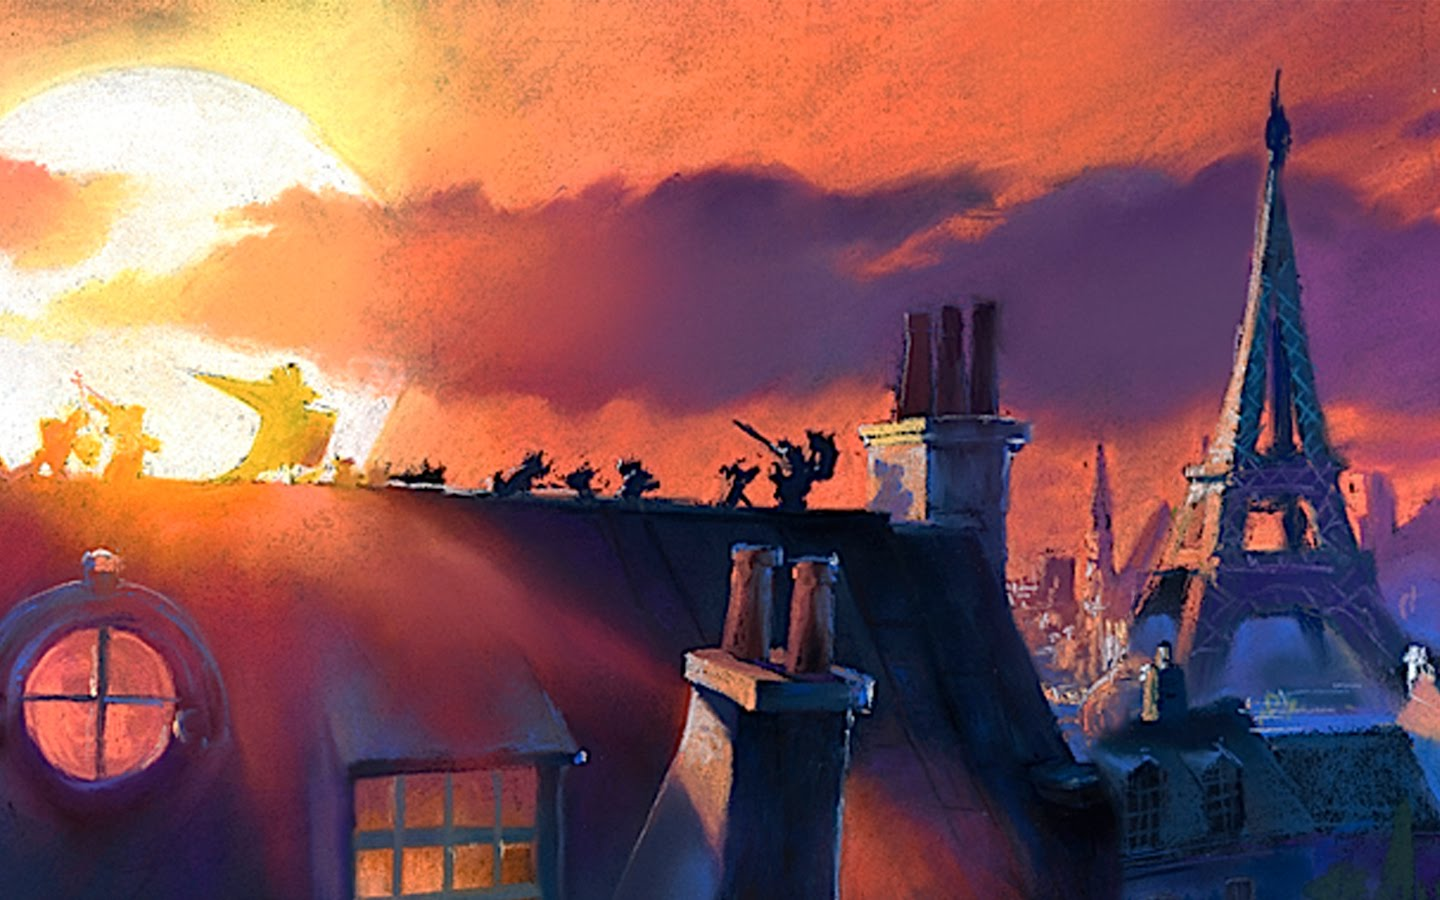 Free Download Pixar Wallpapers Collection The Art Of